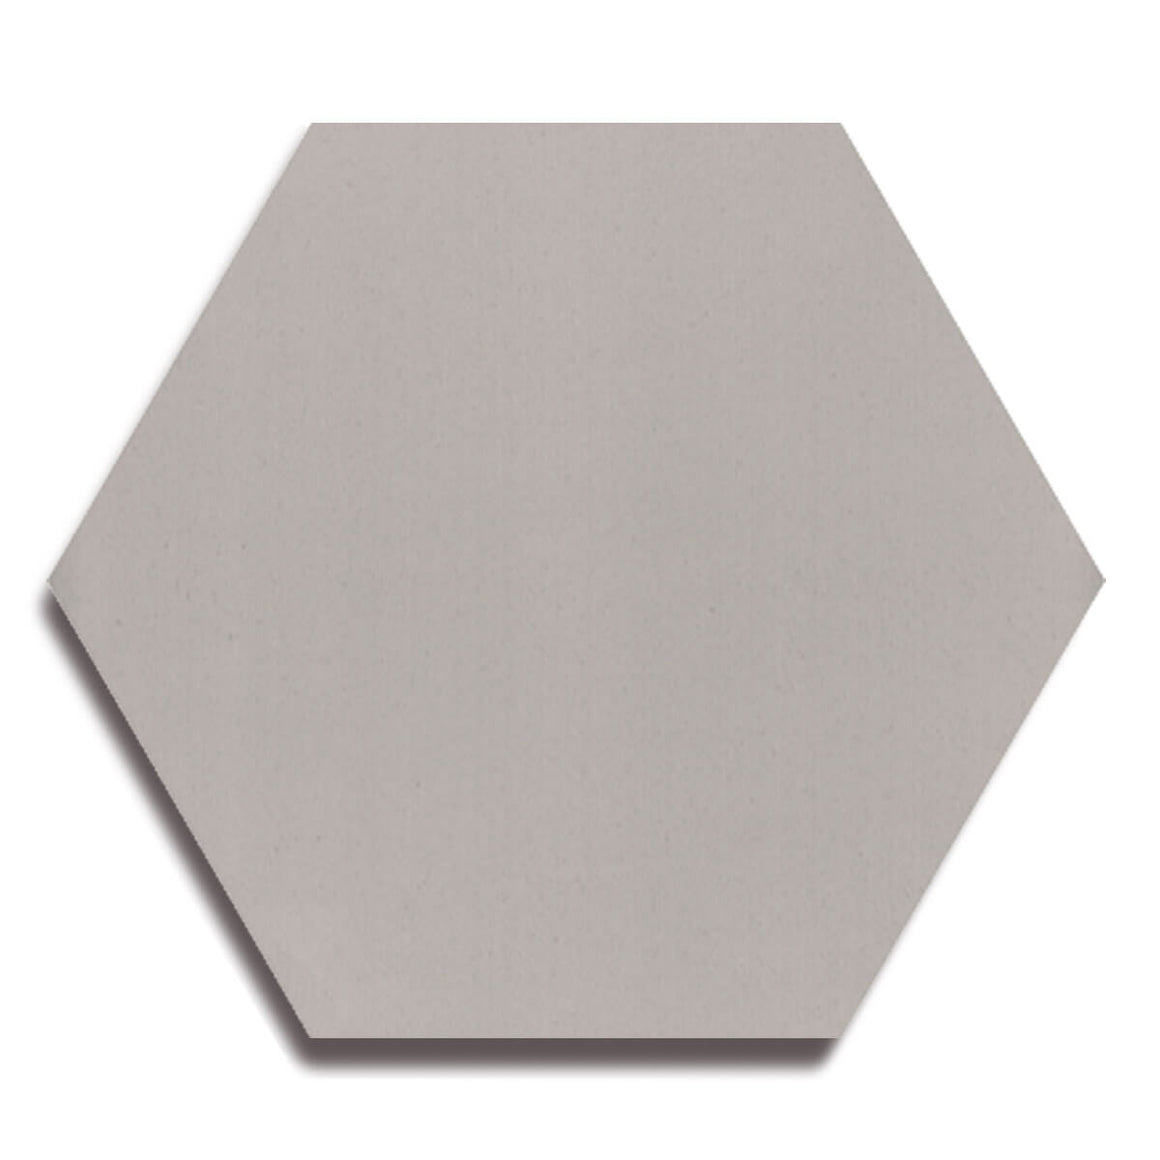 Cement Hex, Beige